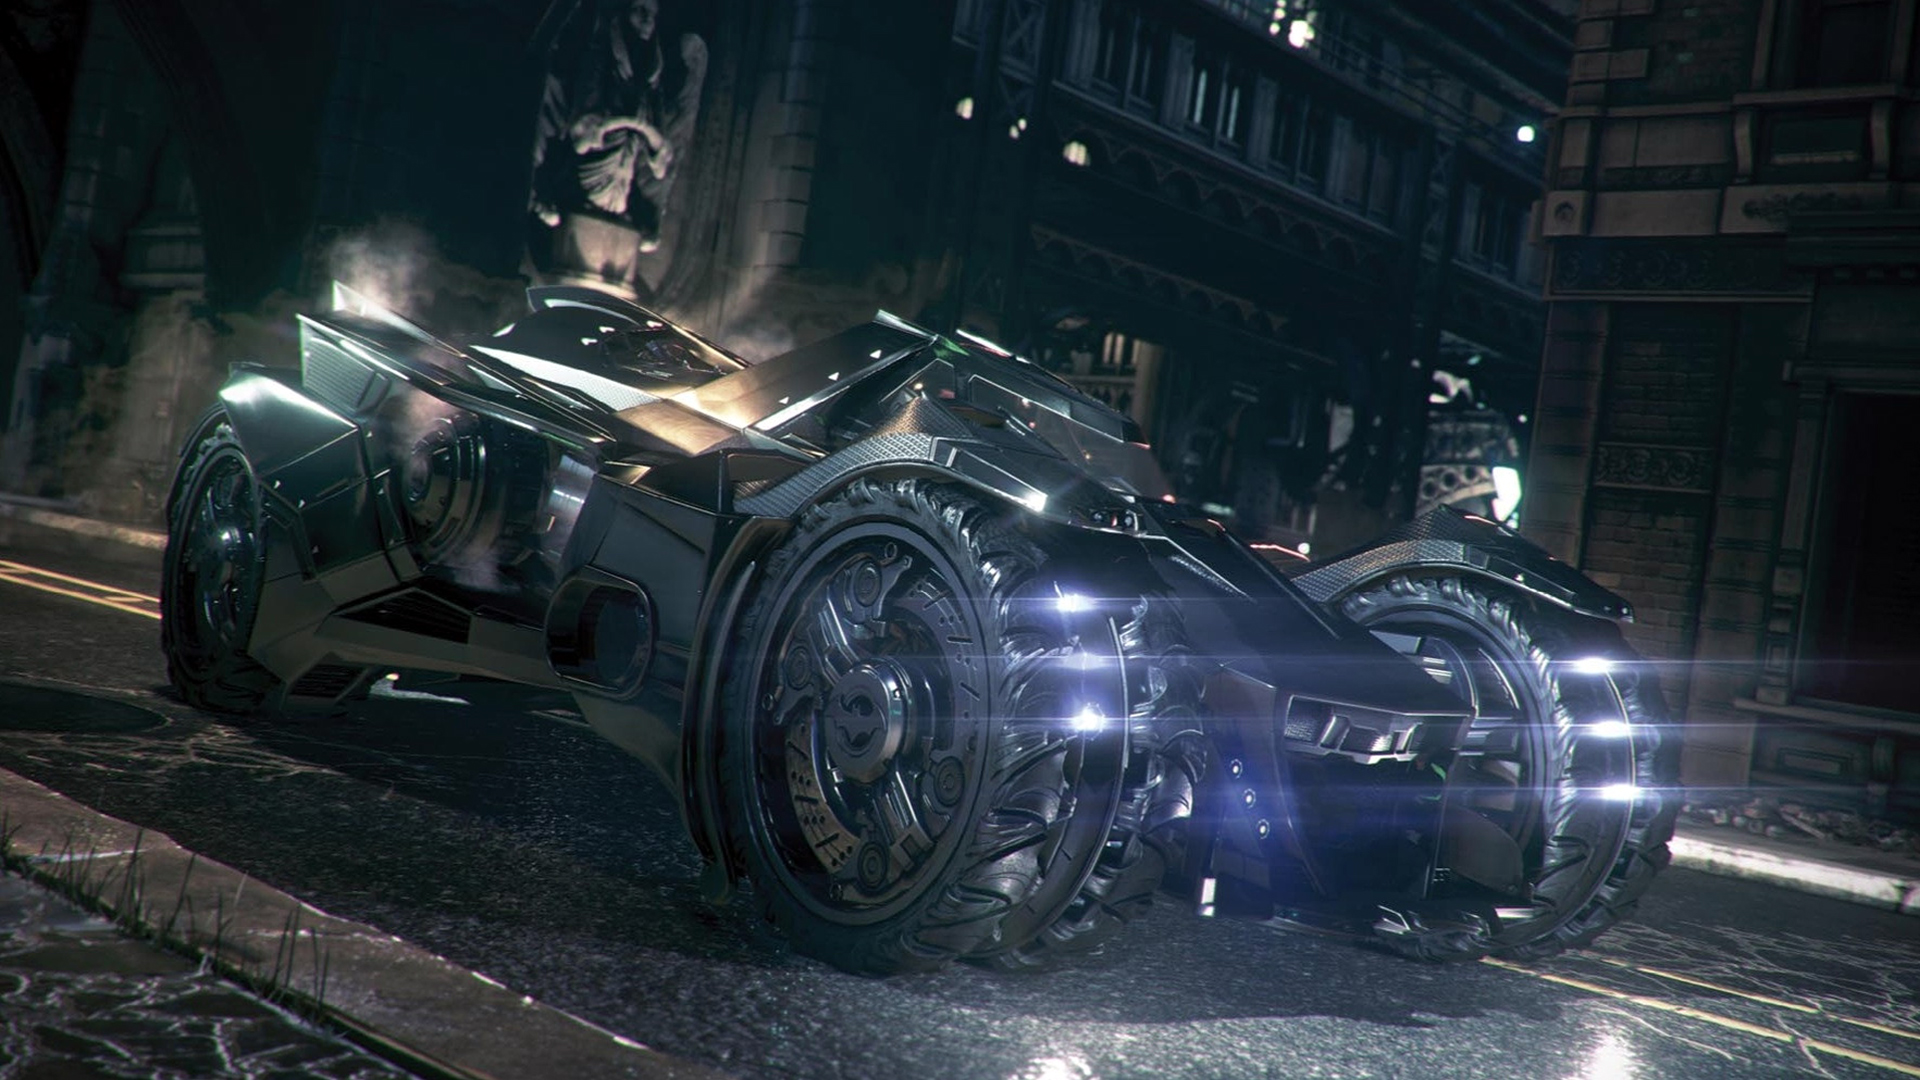 new batmobile batman arkham knight game hd 1920x1080 1080p wallpaper 1920x1080